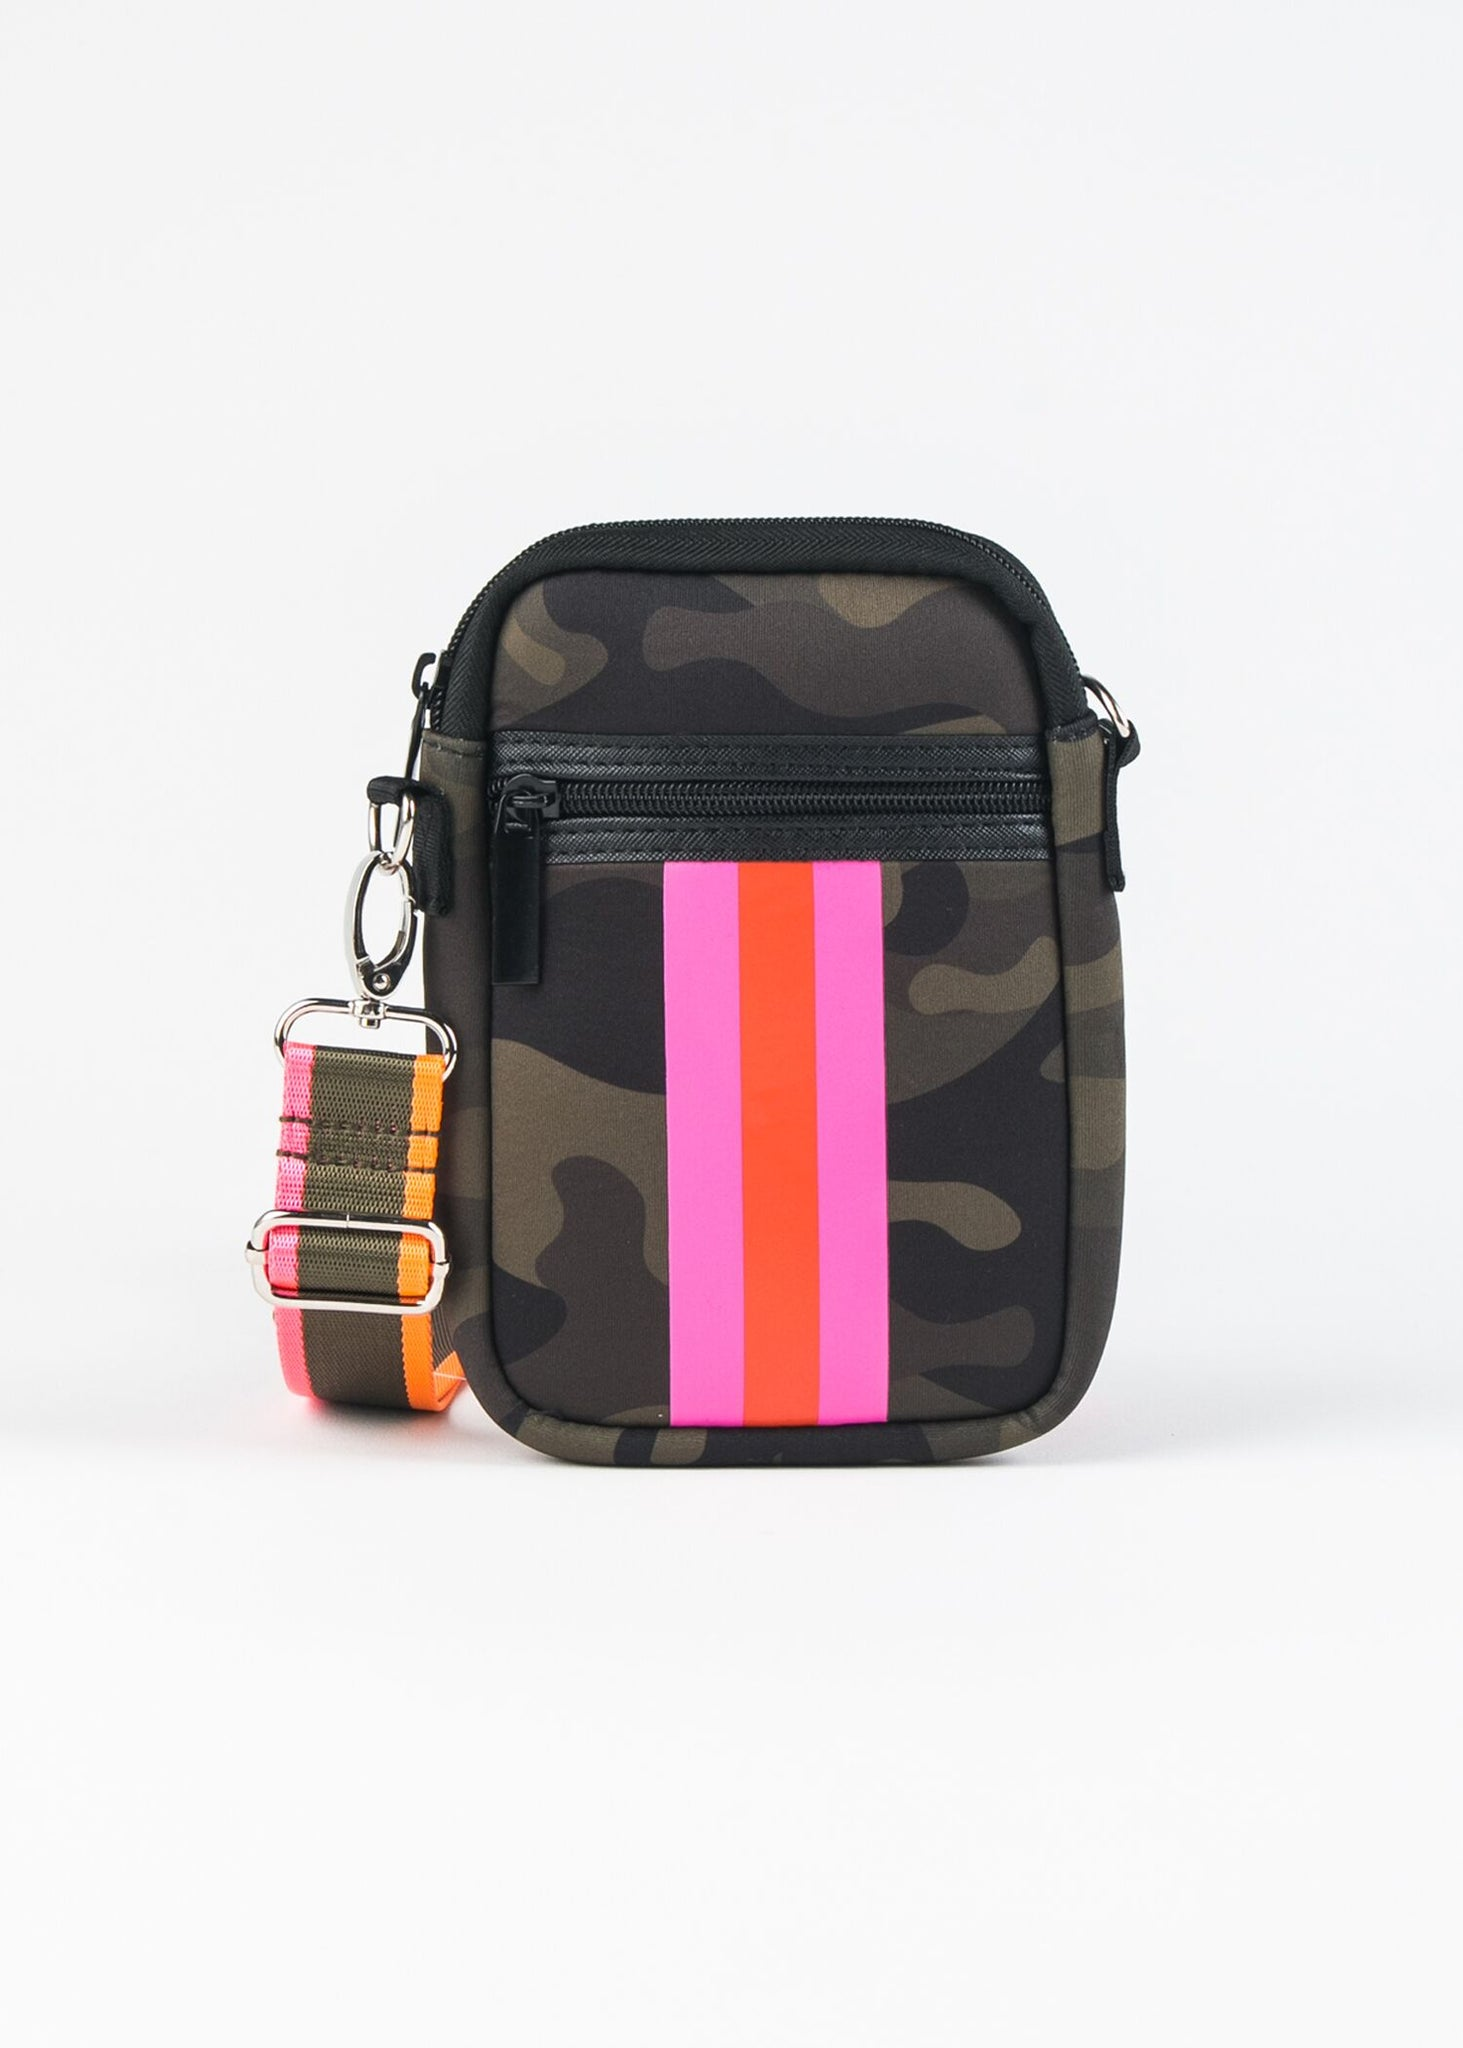 CASEY-2 NEOPRENE CELL PHONE CROSSBODY WITH STRIPE